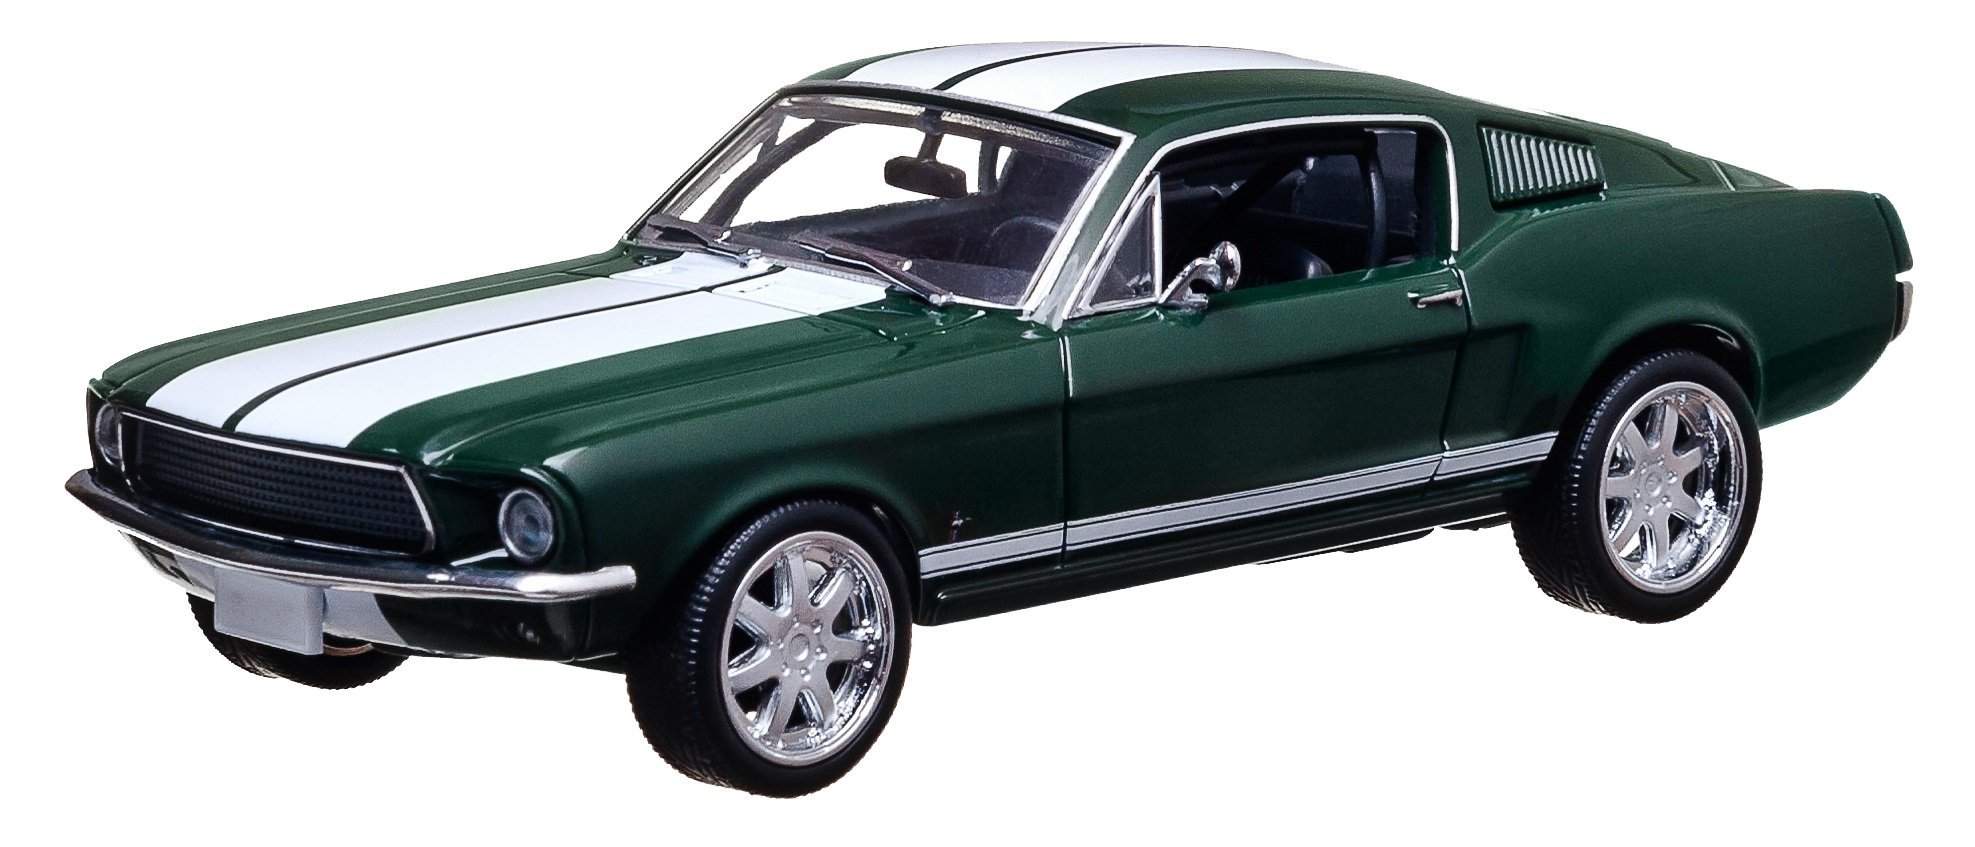 Galleon 1 43 fast furious tokyo drift 1967 ford mustang